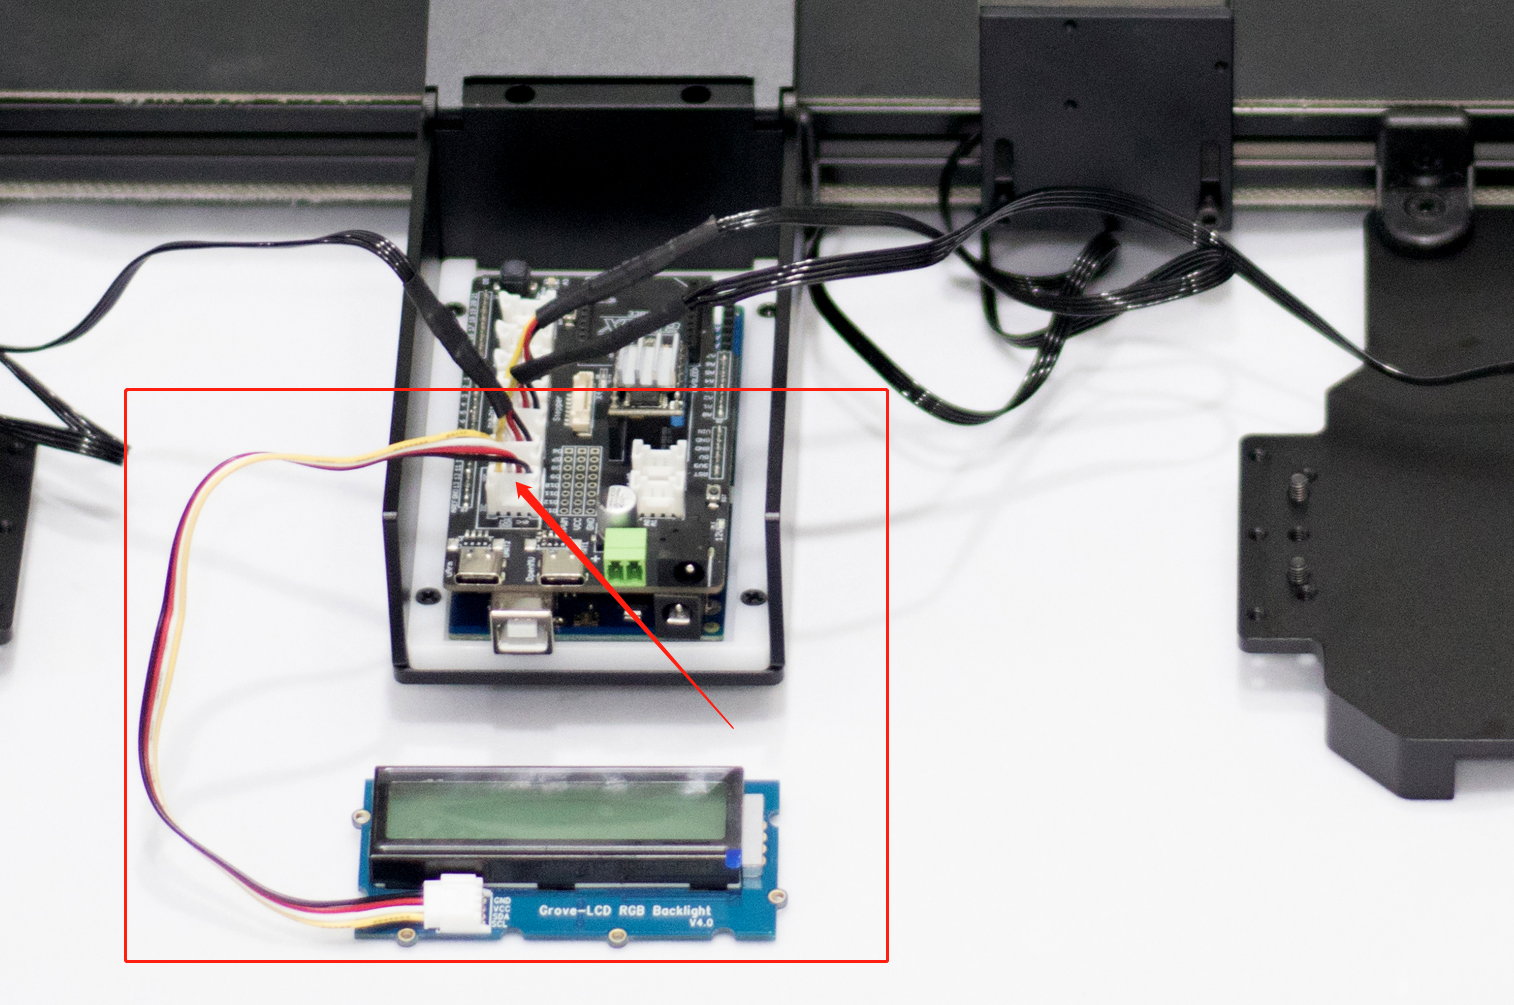 Picture of Connect LCD: Insert the LCD Cord Into the IIC of the Main Control Board